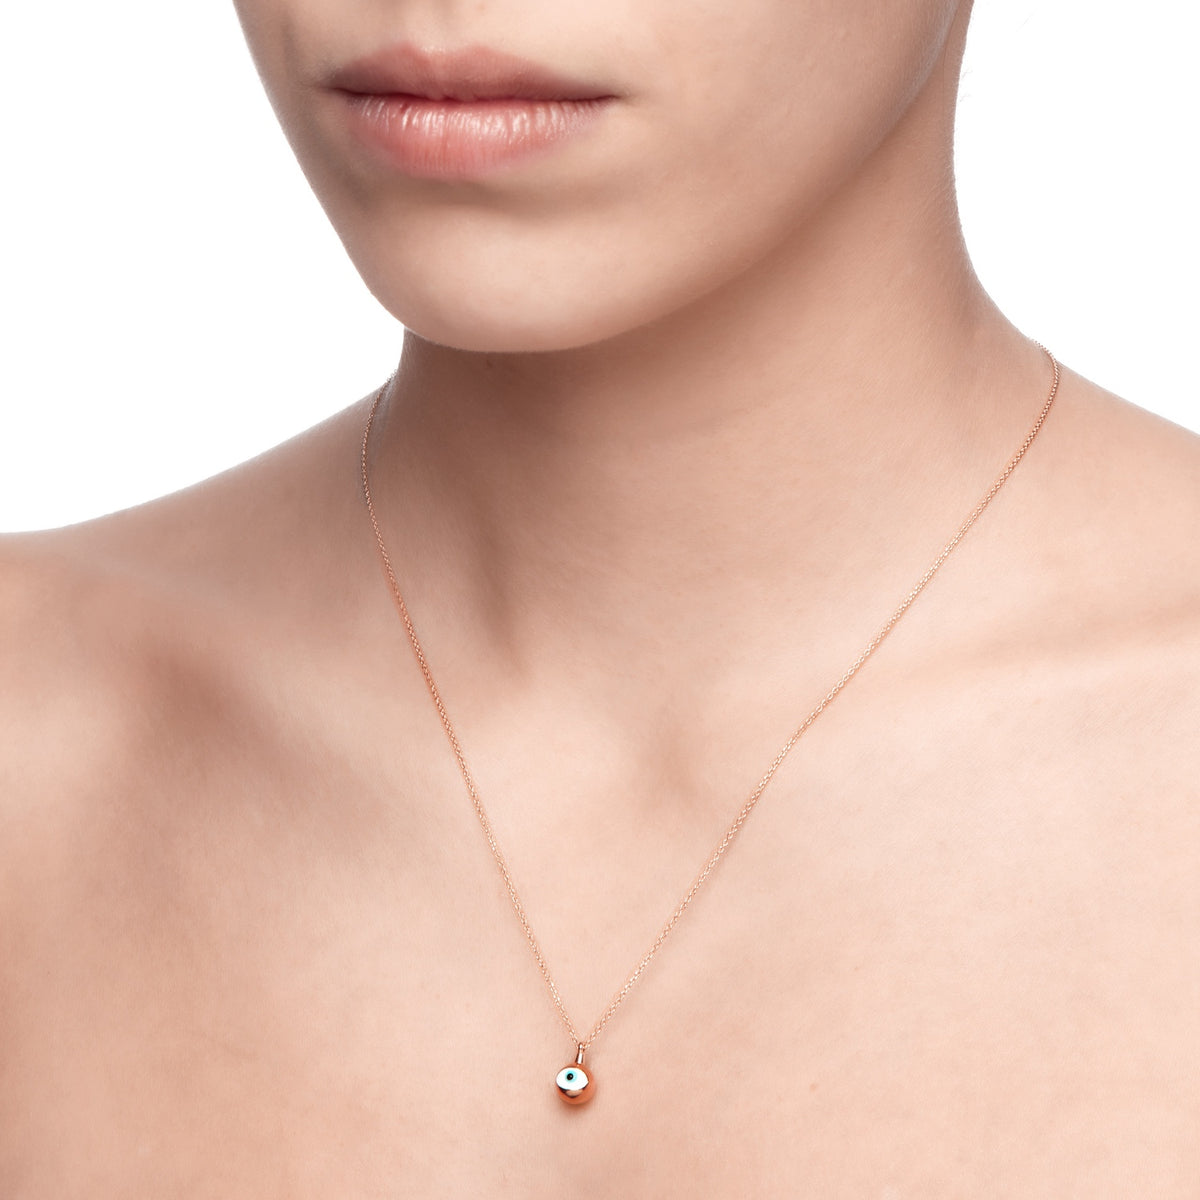 MATI | Sphere Necklace | White Enamel | Rose Gold Plated 925 Silver